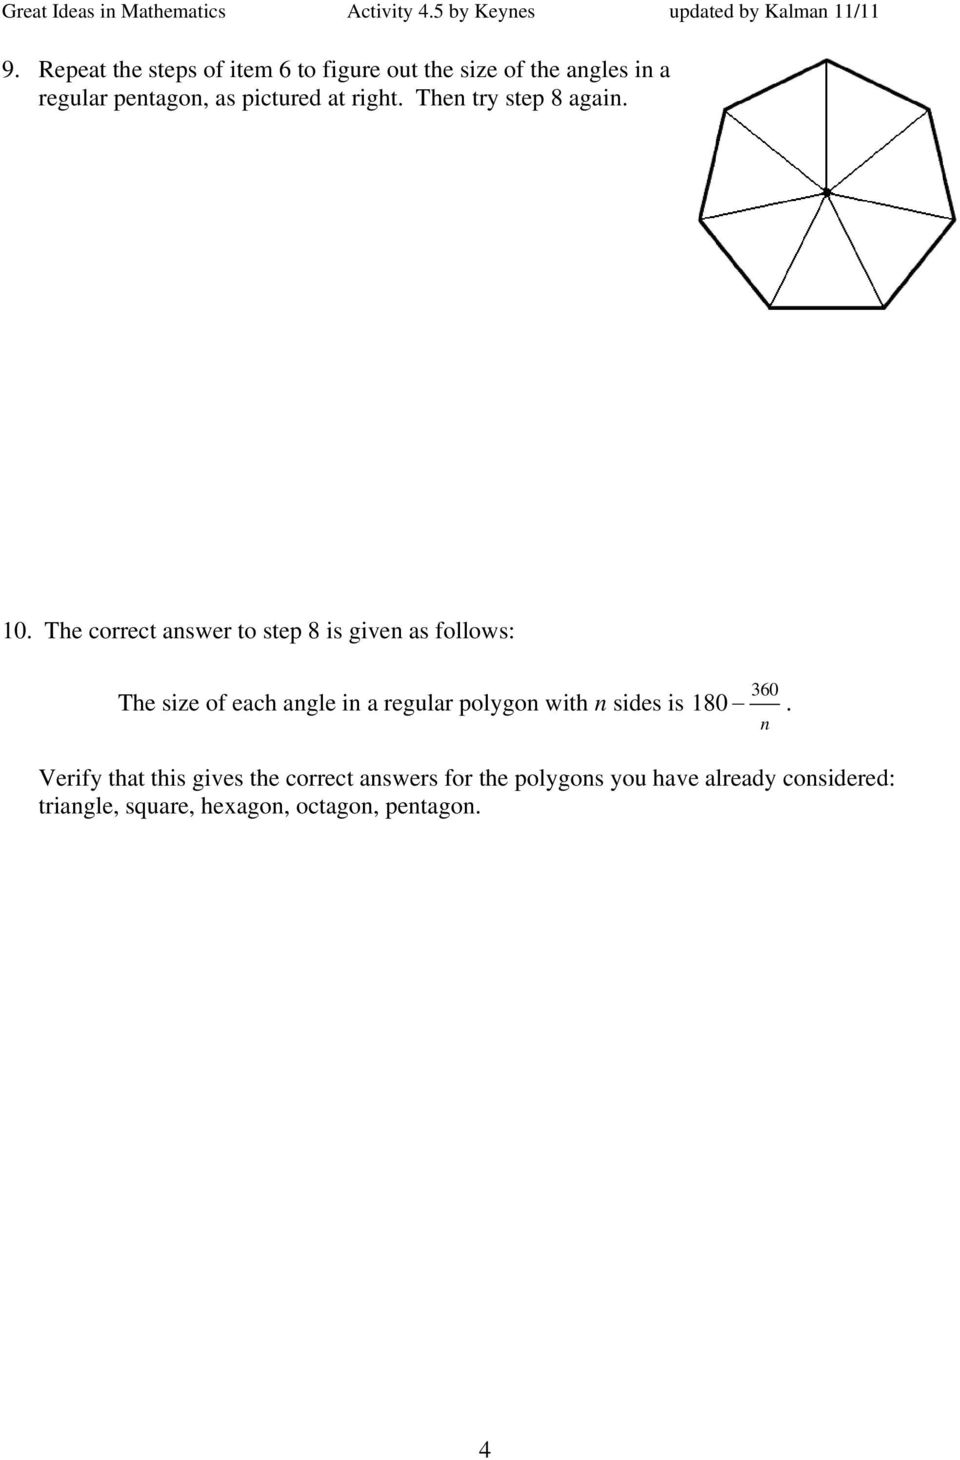 The correct answer to step 8 is given as follows: The size of each angle in a regular polygon with